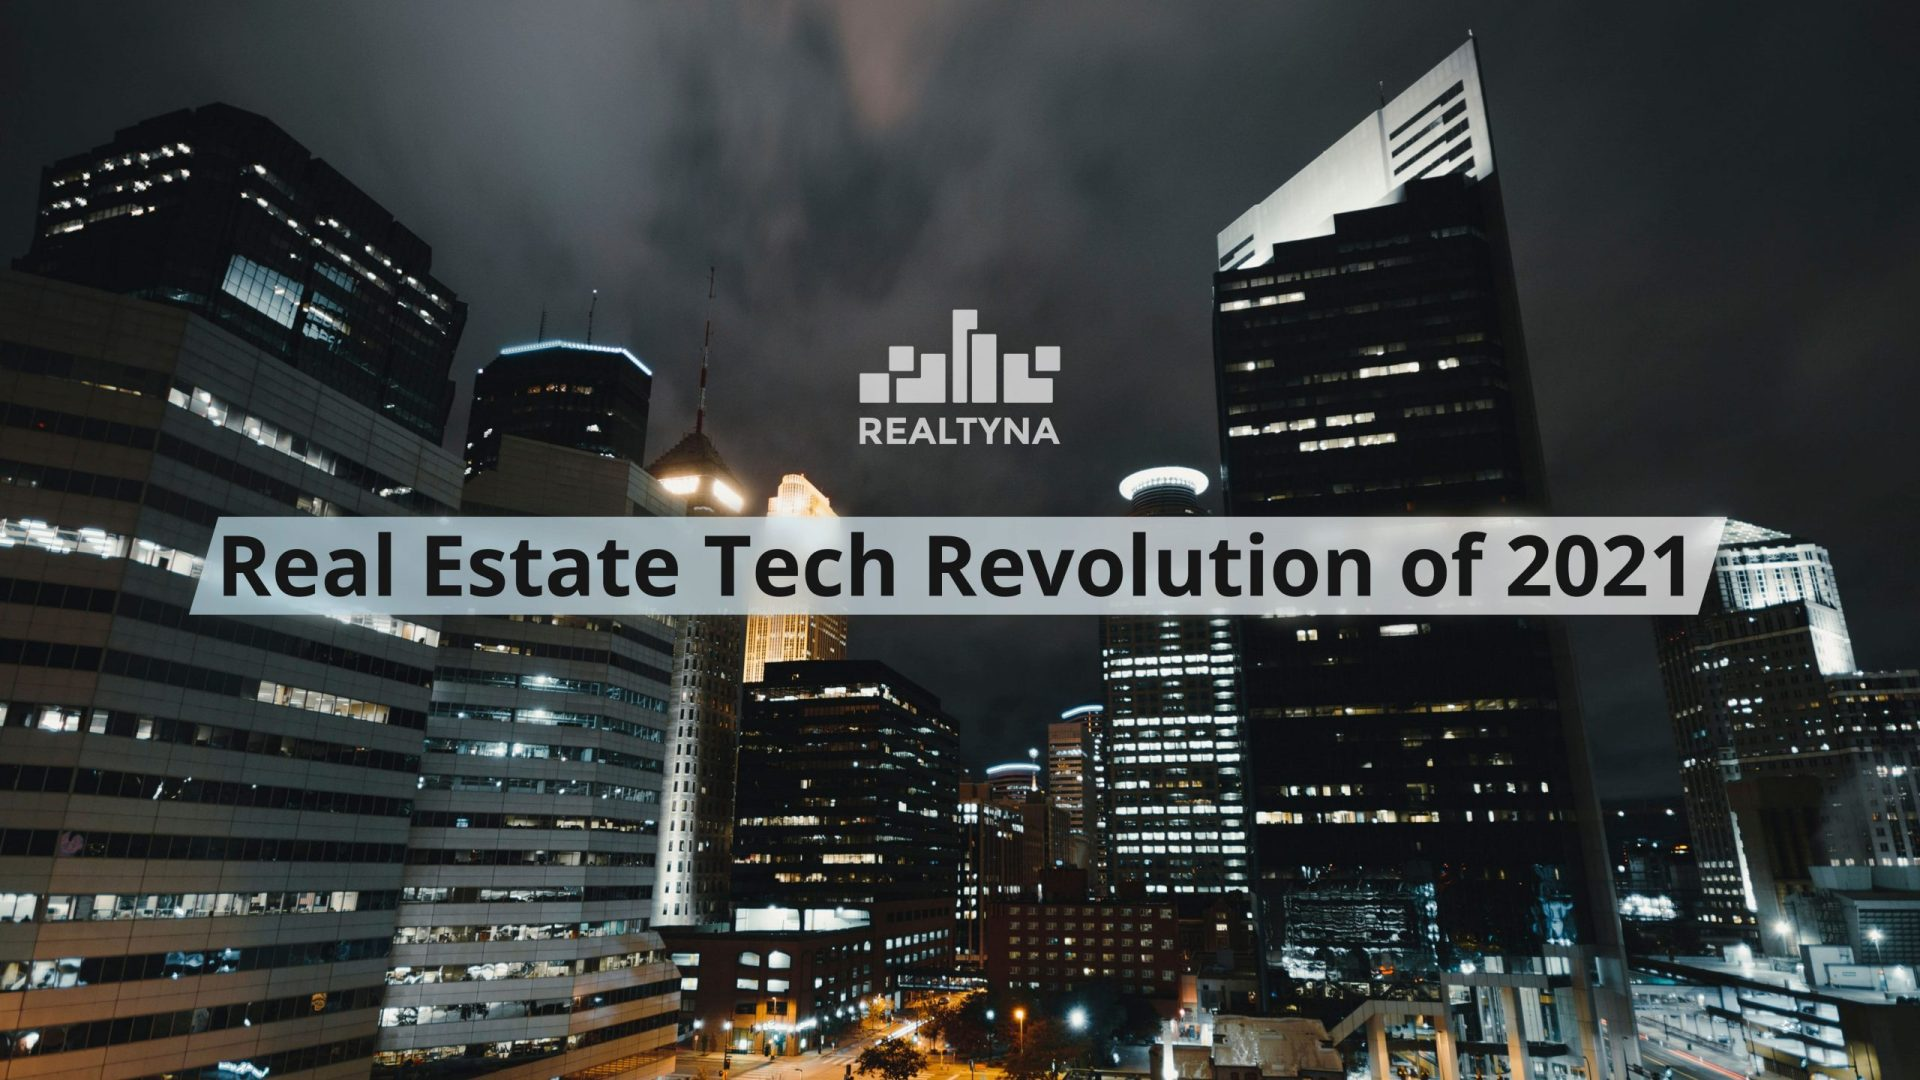 Real Estate Tech Revolution of 2021